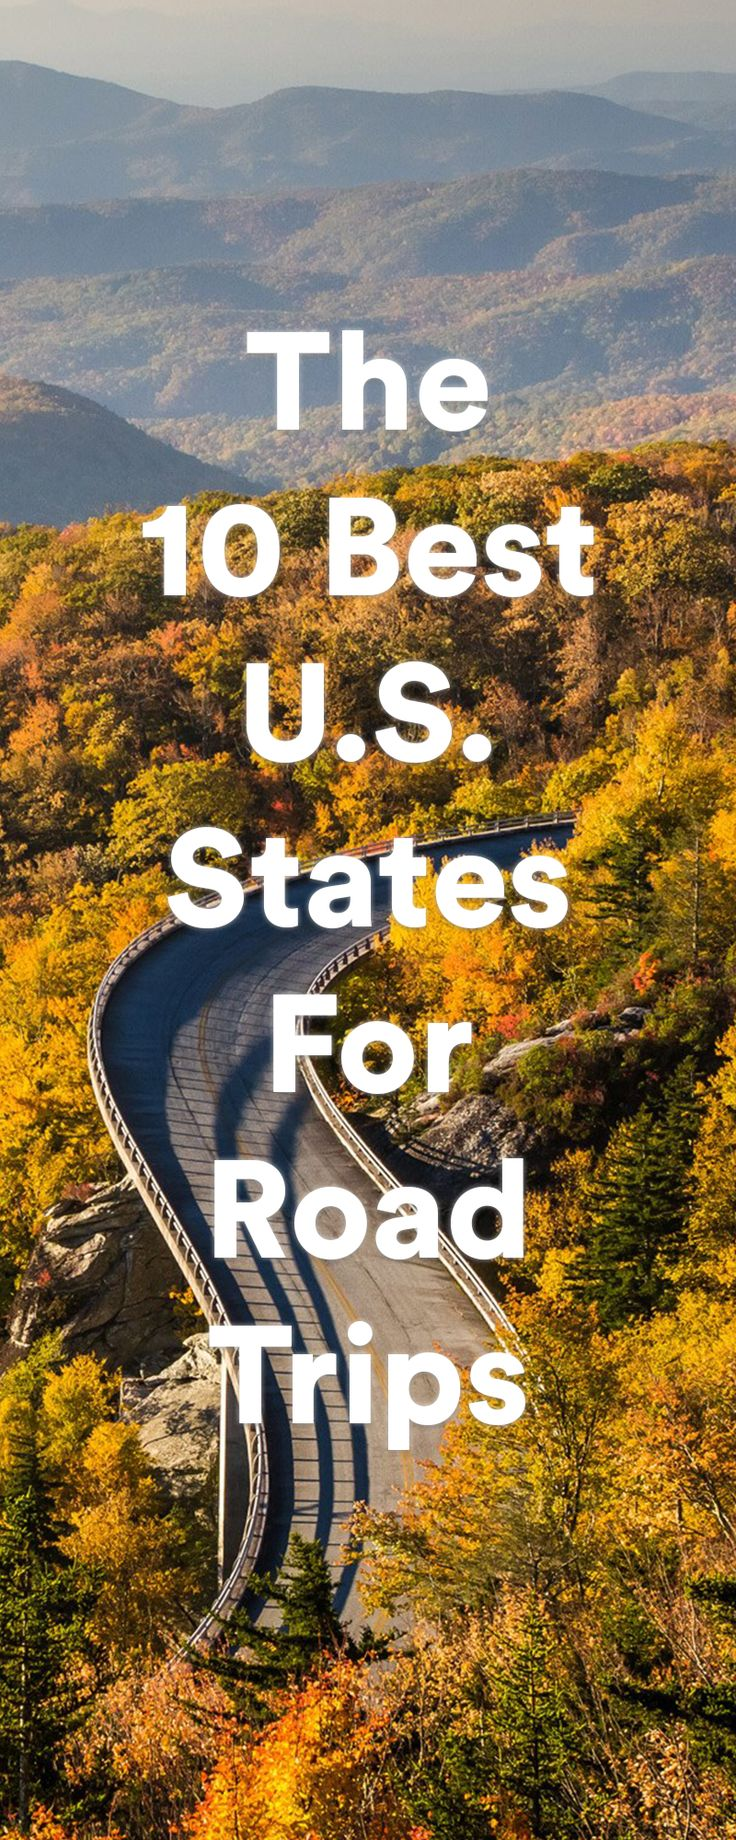 A whopping 79 percent of Americans are planning to hit the highway this summer for a road trip, according to AAA, and the options for where to go are nearly endless across our 50 states. But some places lend themselves to road trips better than others, thanks to low gas prices, summer weather, high numbers of national parks and scenic byways, and more. Weighing up 22 contributing factors, WalletHub has pulled together a list of the top states for road trips, from coast to coast.